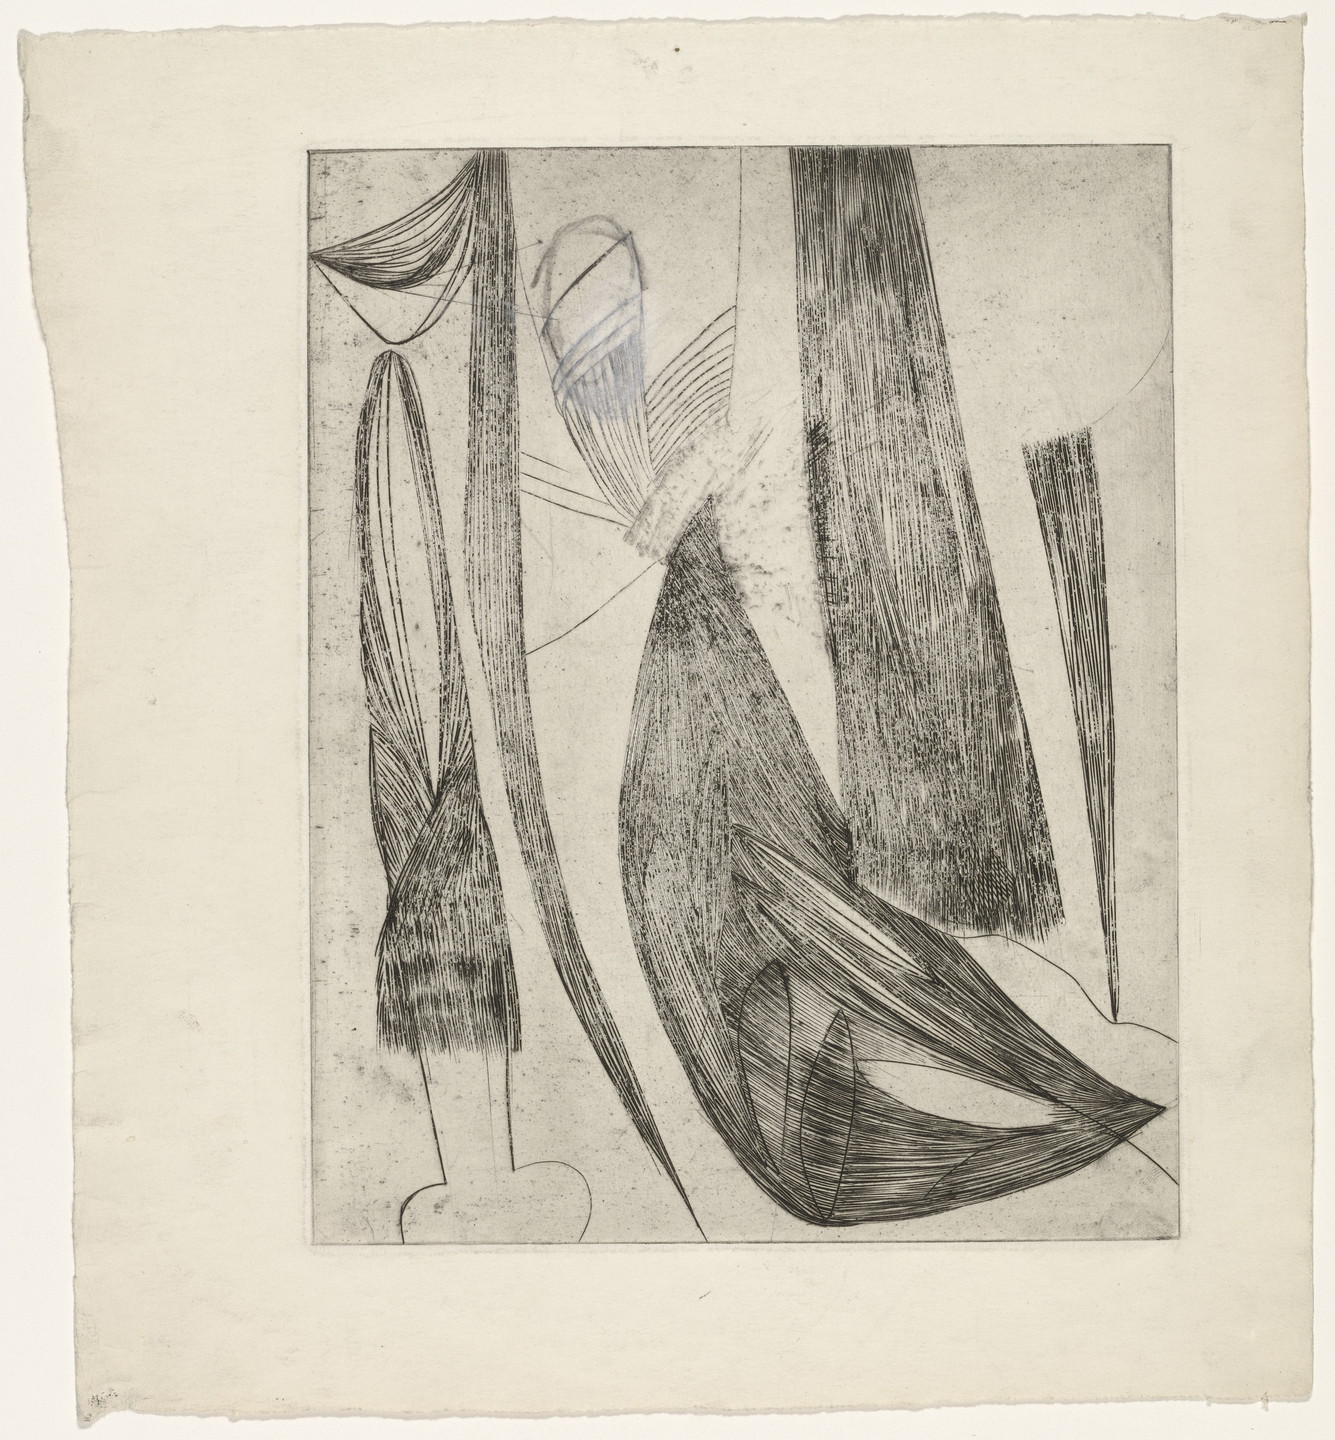 Louise Bourgeois. Ascension Lente. 1949